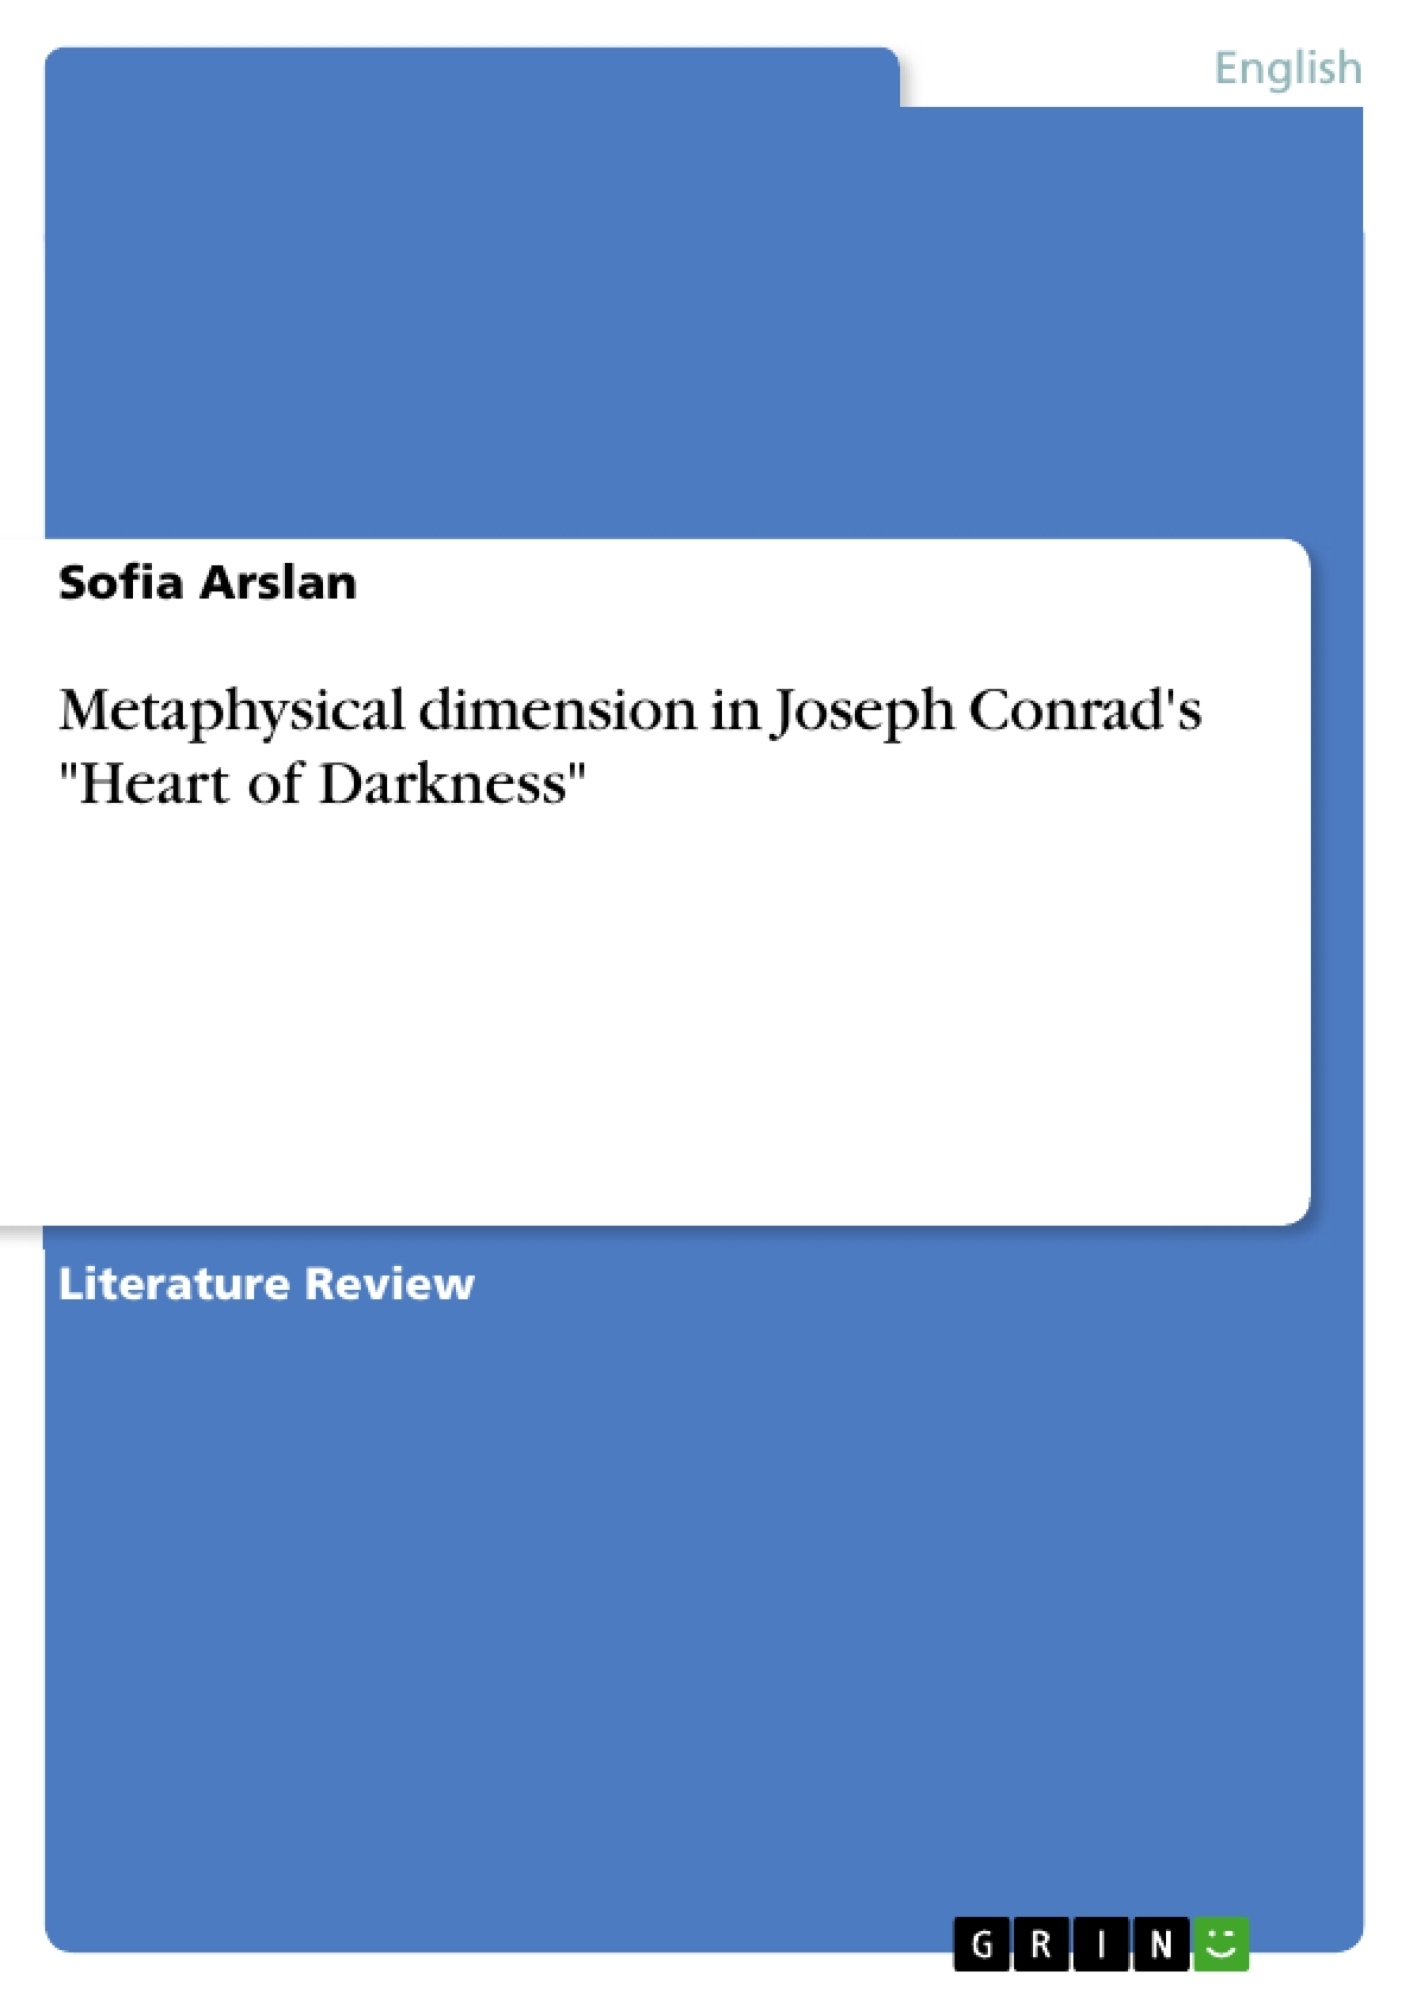 Metaphysical dimension in joseph conrads heart of darkness upload your own papers earn money and win an iphone x biocorpaavc